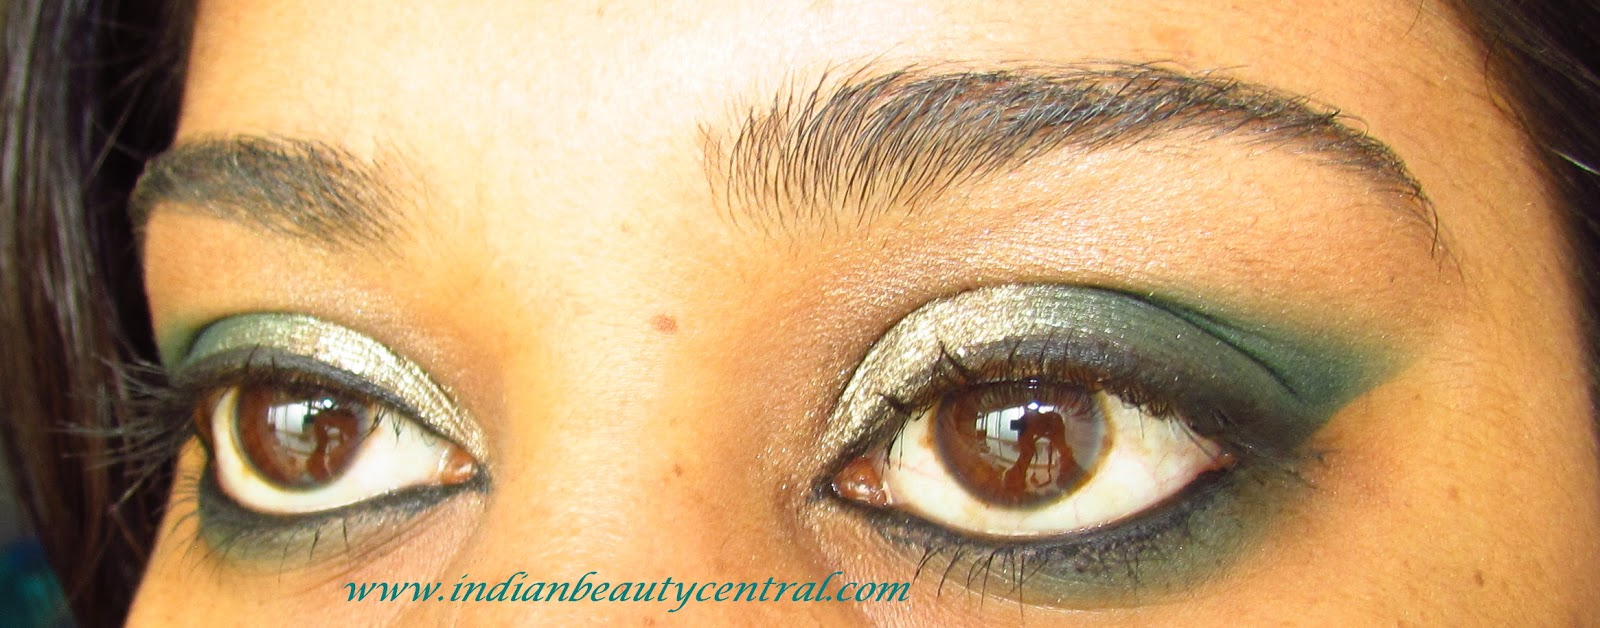 Indian Beauty Central Festive Eye Makeup Look Smokey Teal